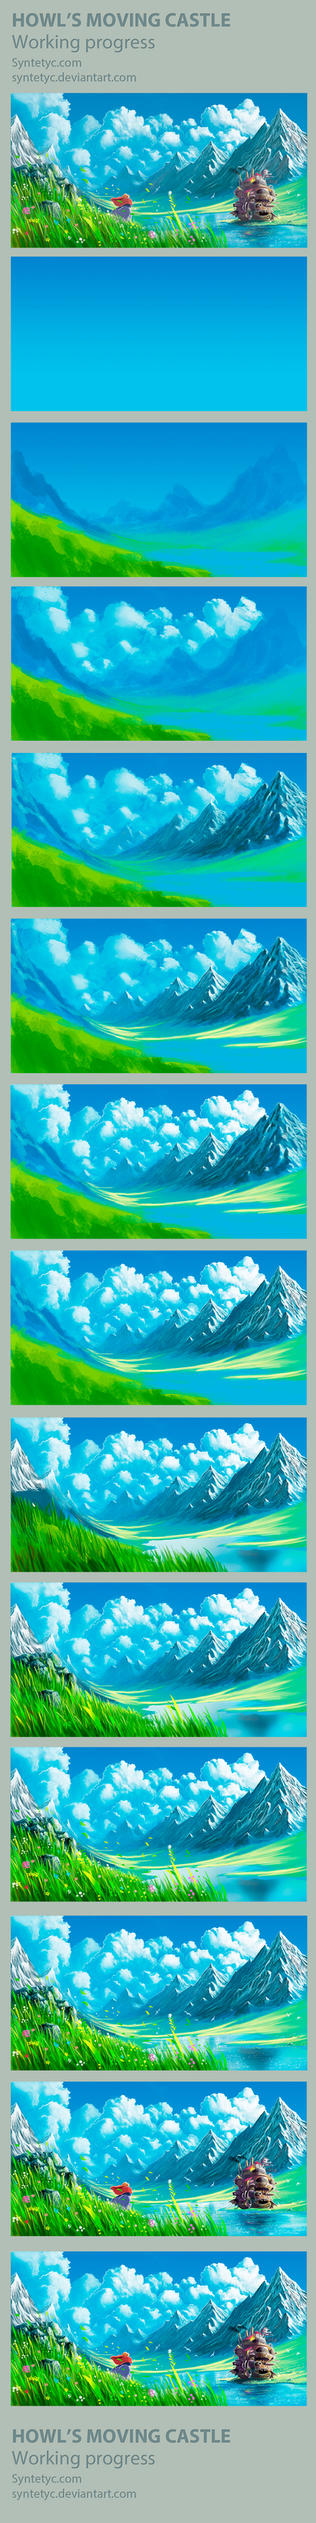 Howl's Moving Castle - Process by Syntetyc